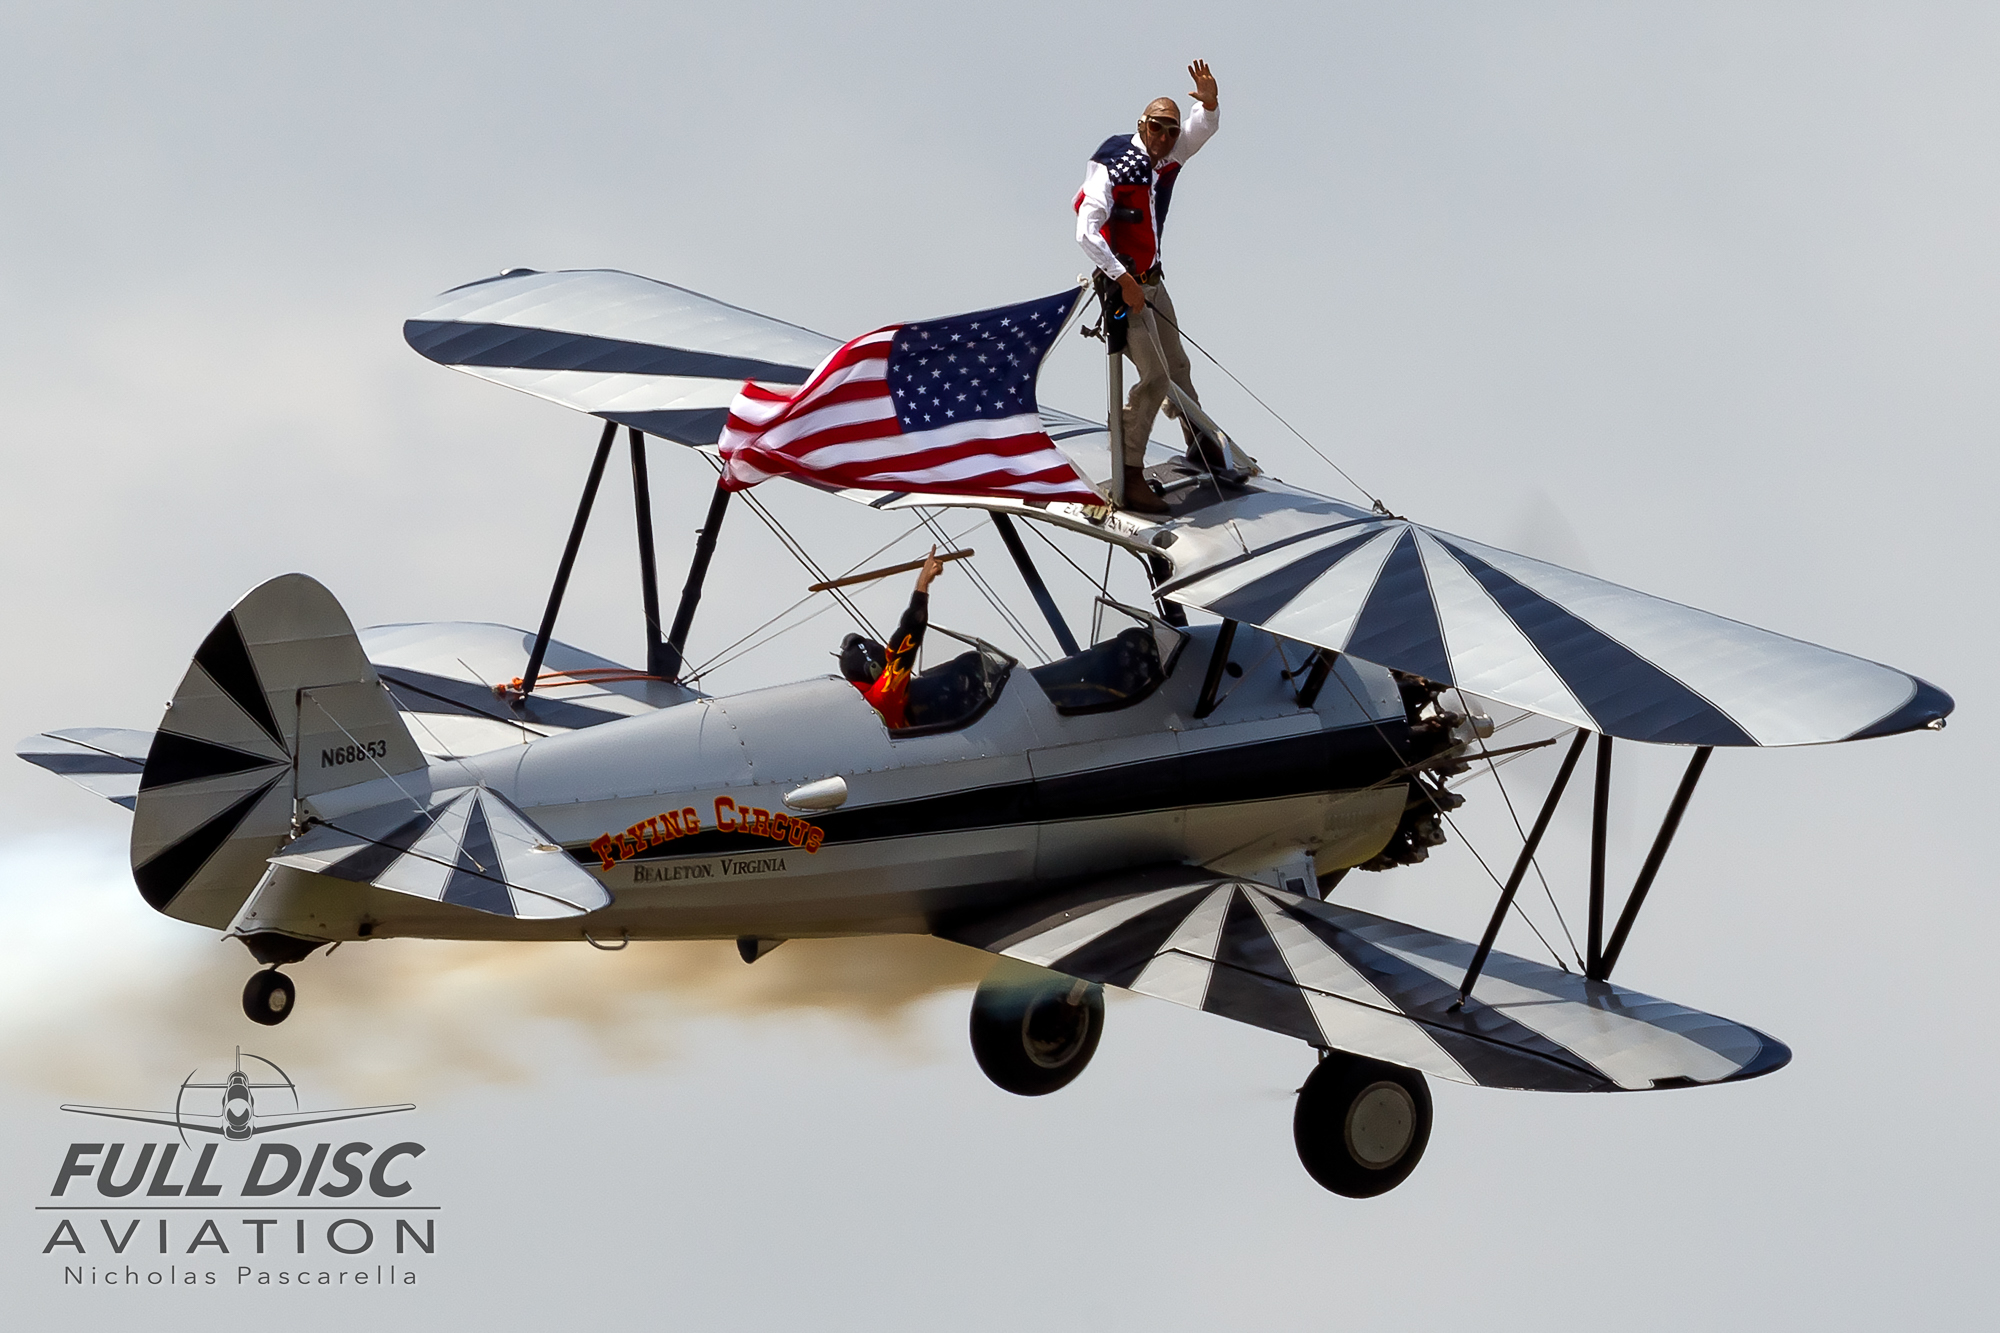 flyingcircus_flag__aviation__nickpascarella_nicholaspascarella_fulldiscaviation_leasewebmanassasairshow.jpg